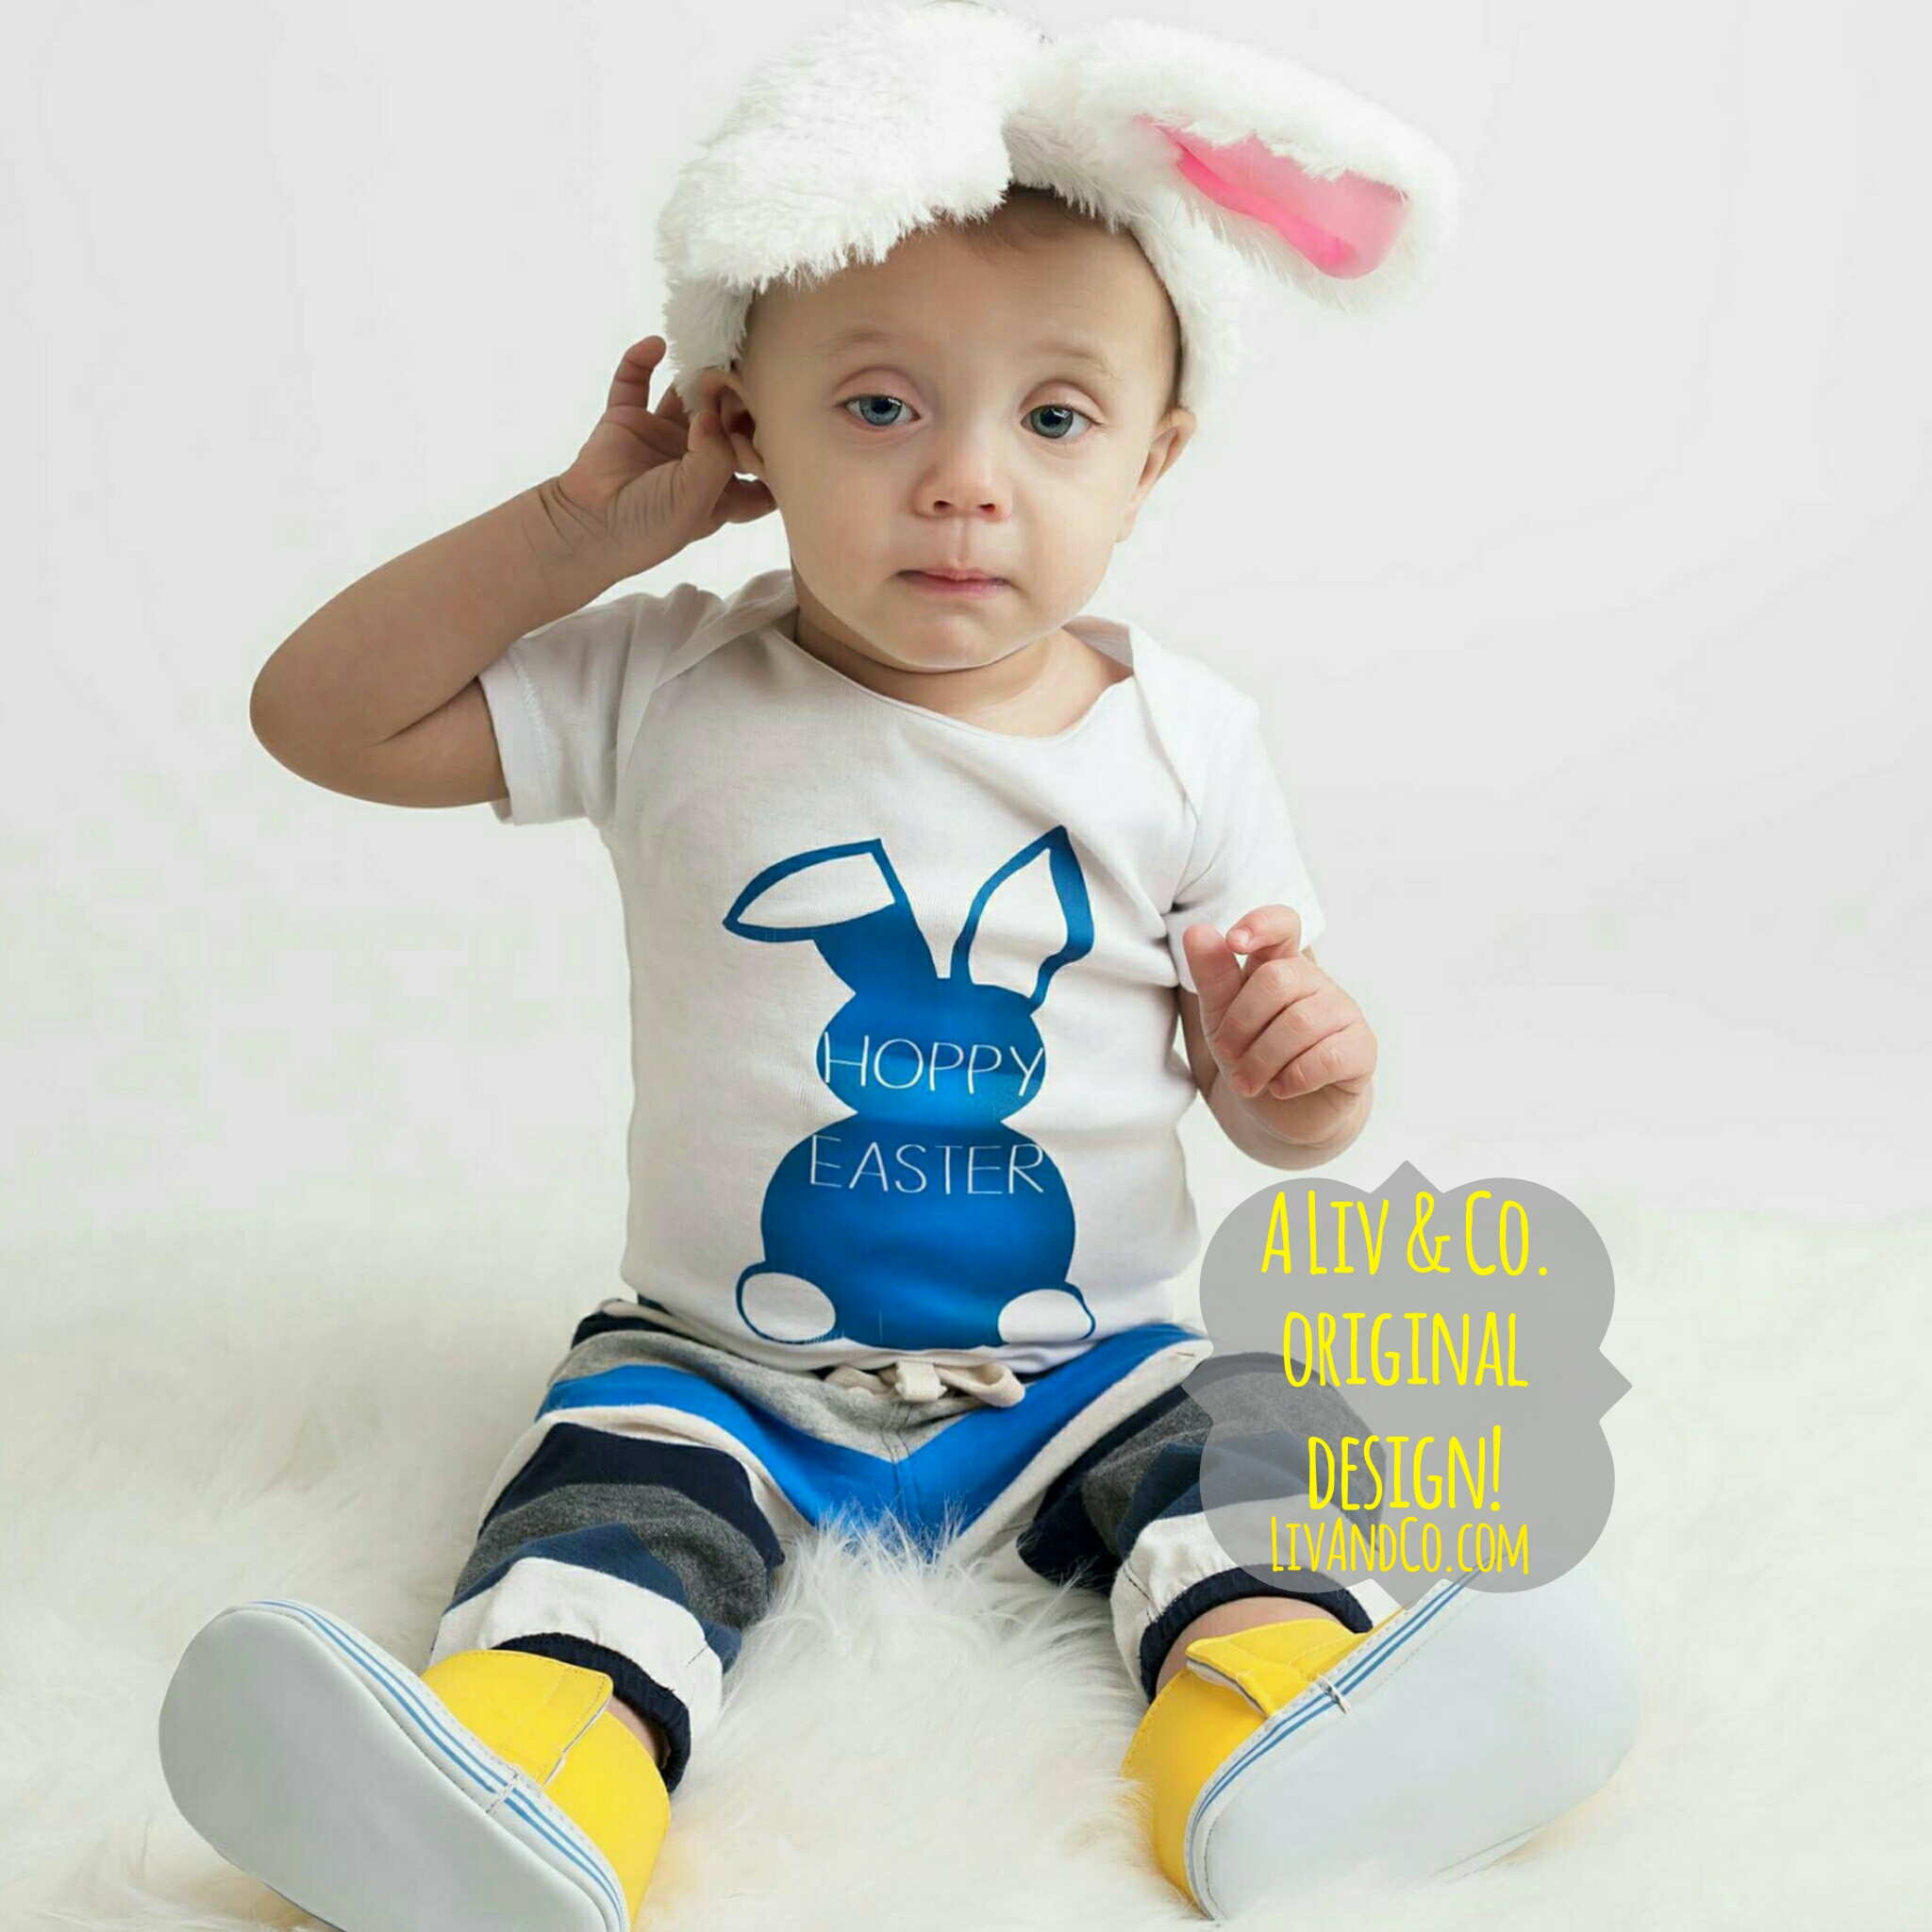 2798669cd25e1 Boy Easter Shirts - Easter Shirts for Boys - Baby Boy Easter Outfit